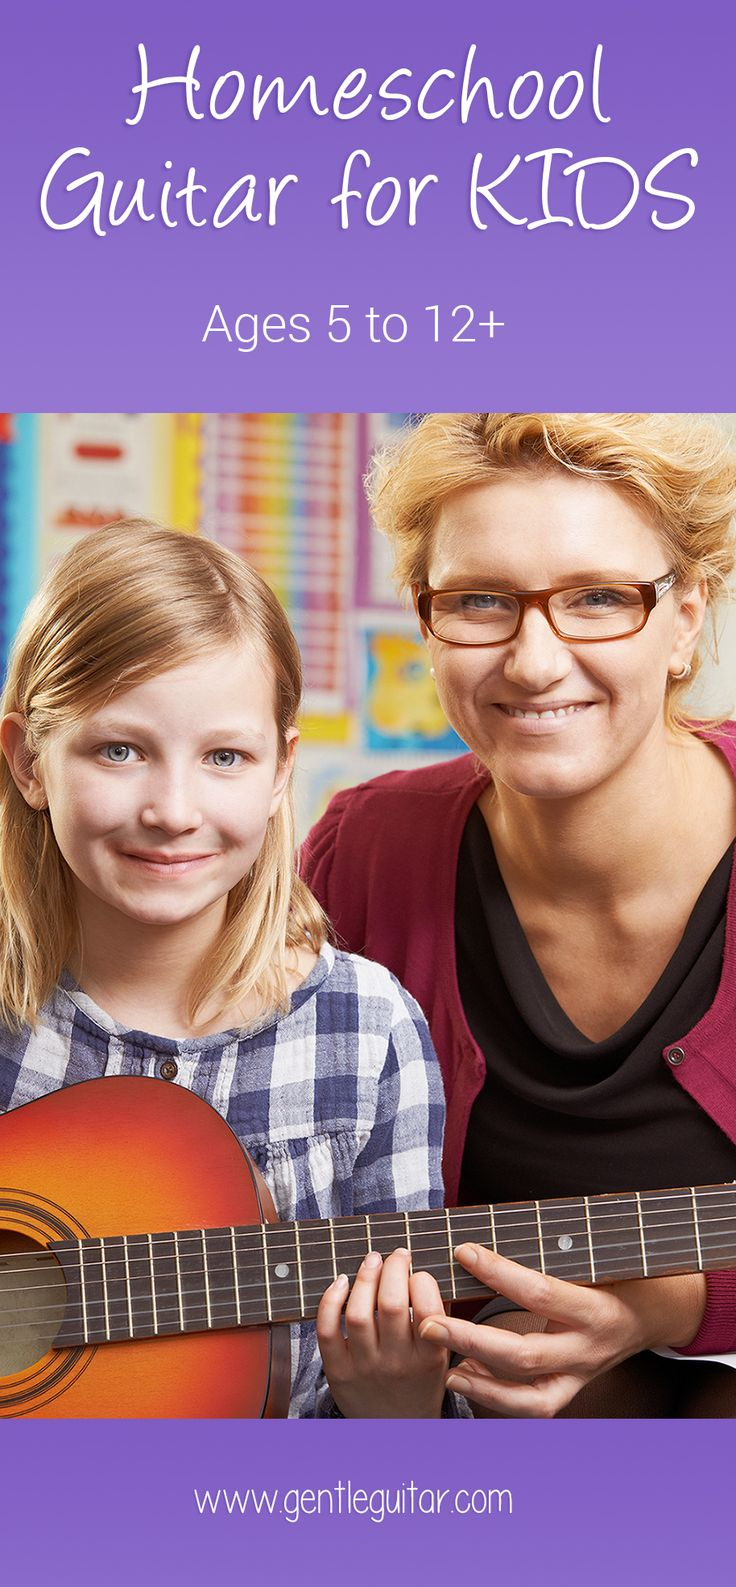 What are the ingredients of a great homeschool music program? Find out what makes a great music program, plus try a free trial lesson at: http://gentleguitar.com/offers/homeschooling